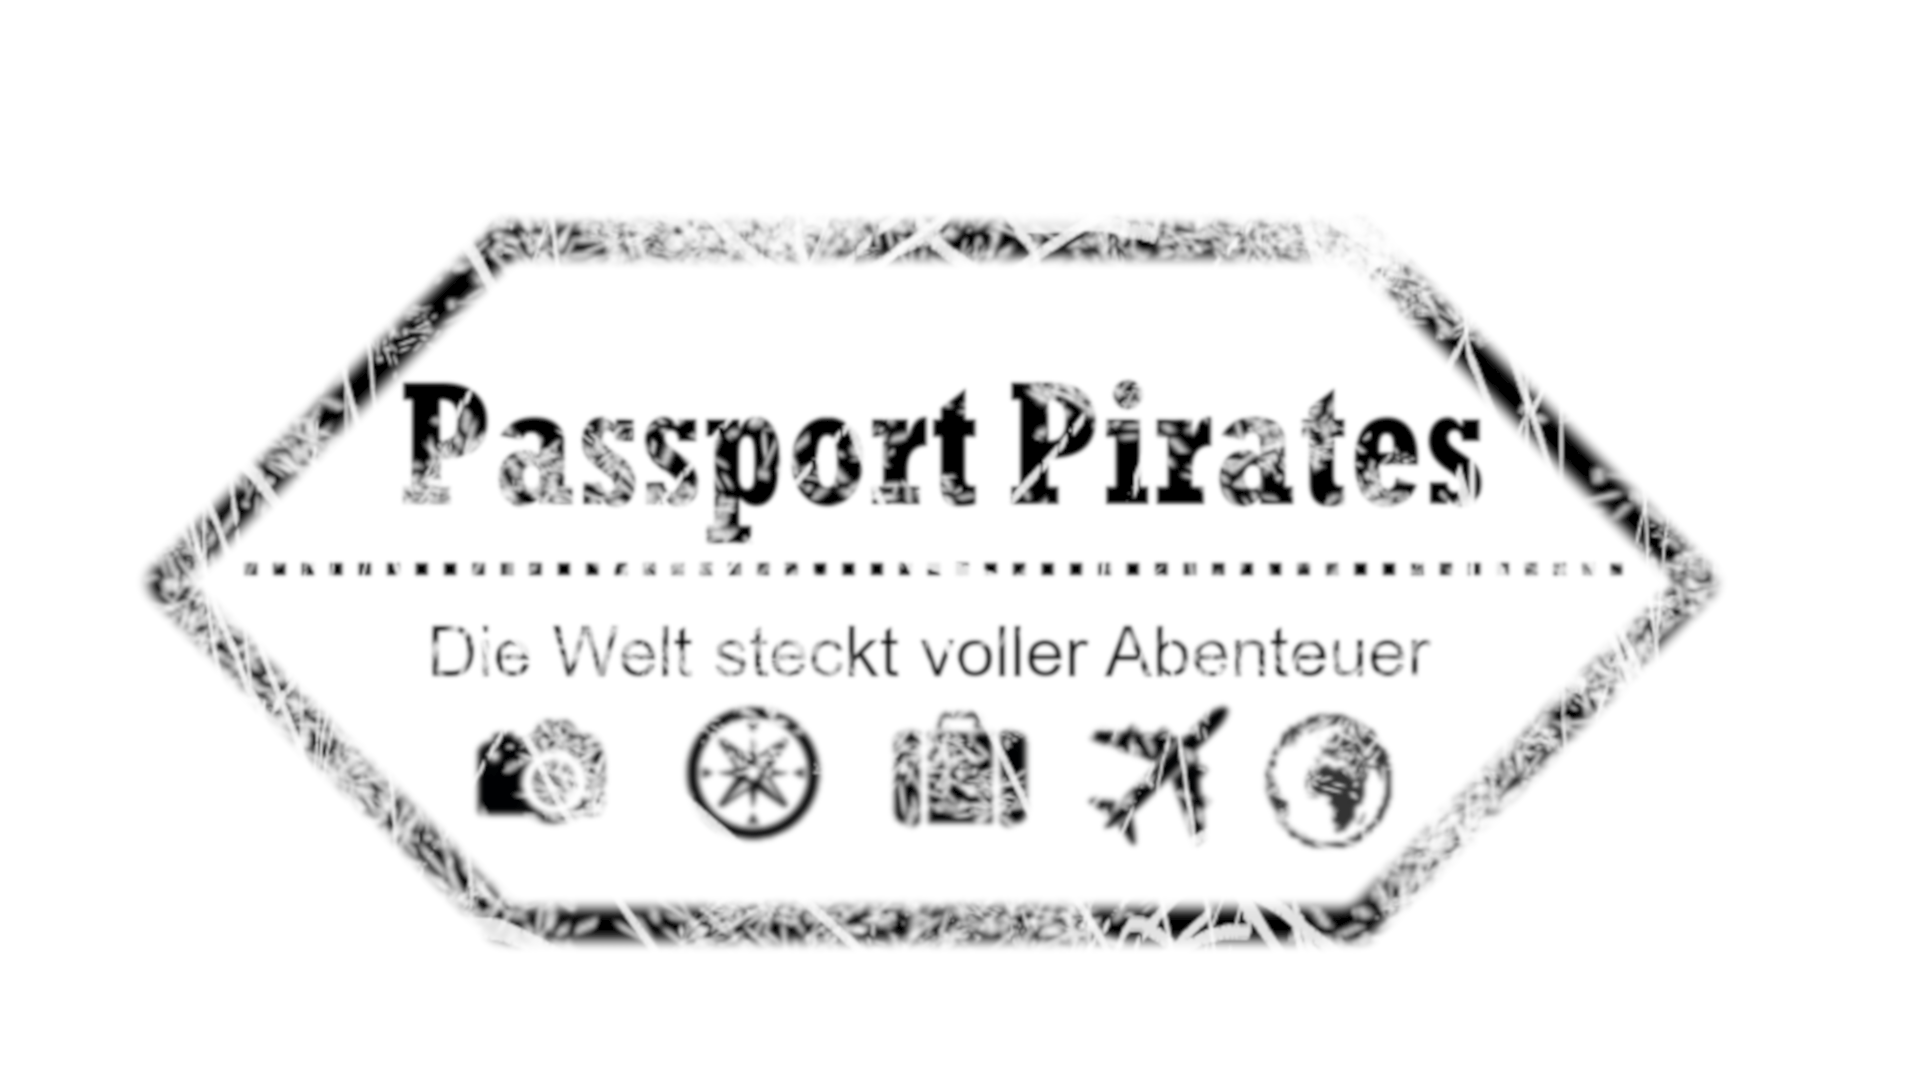 https://passportpirates.de